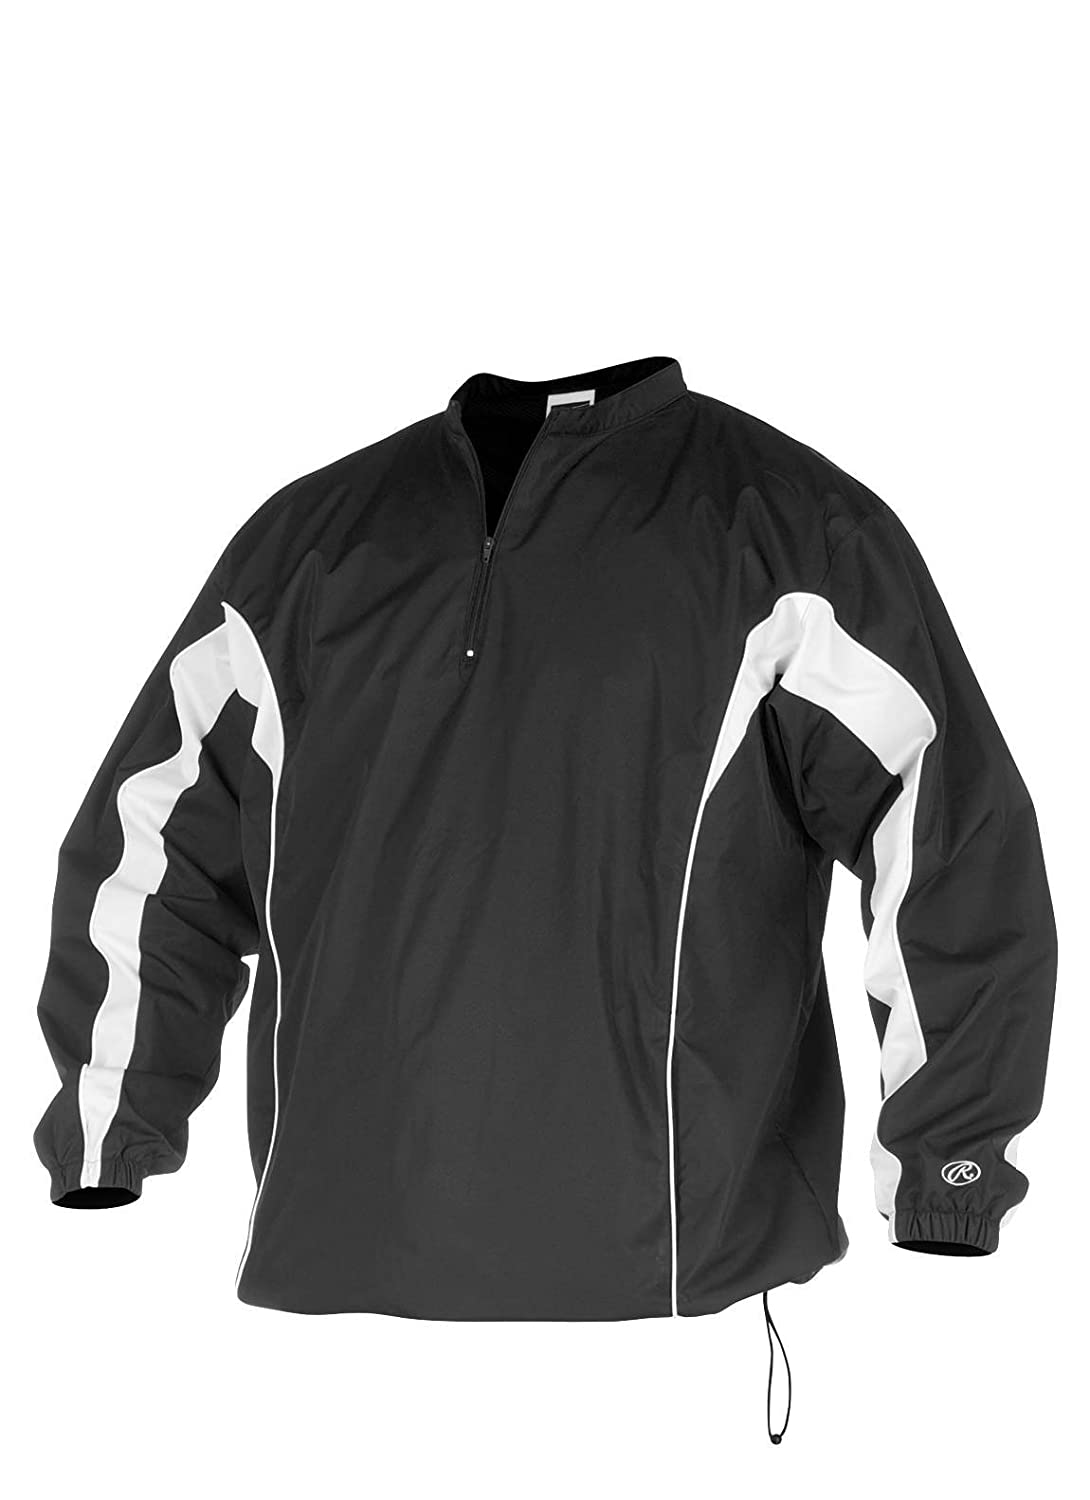 Rawlings Mens Tijls Long Sleeve Pullover Jacket